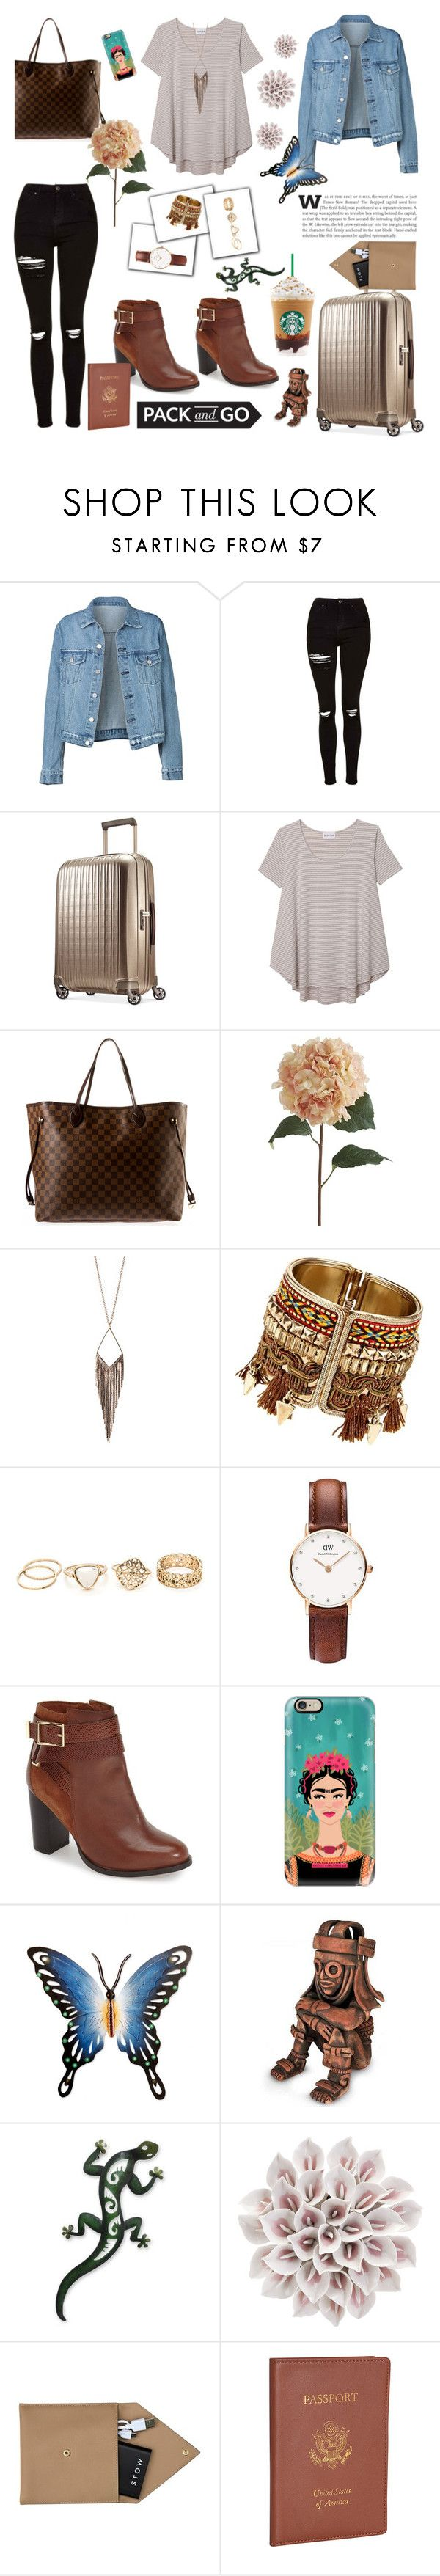 """Pack and Go: Mexico City"" by bellabellica ❤ liked on Polyvore featuring Topshop, Hartmann, Olive + Oak, Louis Vuitton, Pier 1 Imports, Jules Smith, Daniel Wellington, Casetify, NOVICA and STOW"